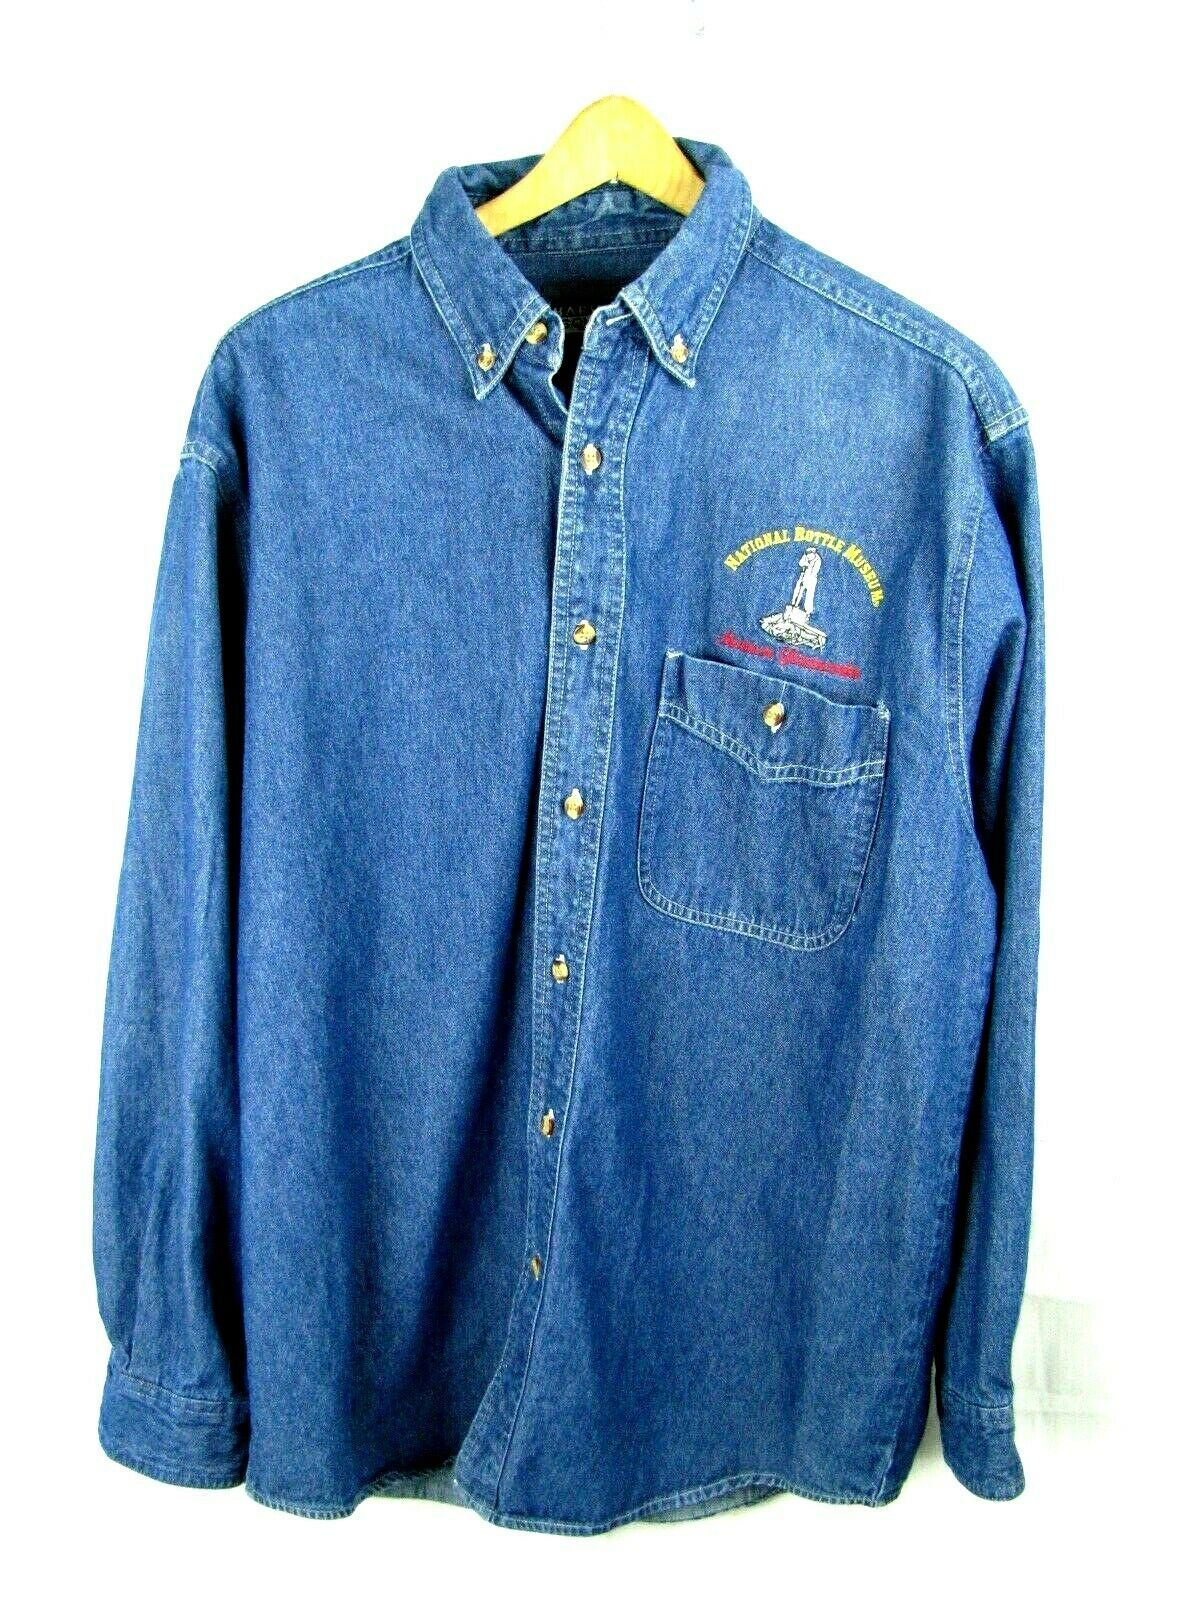 Primary image for Denim National Bottle Museum Long Sleeve Shirt Sz M - Museum Glassworks- Rare